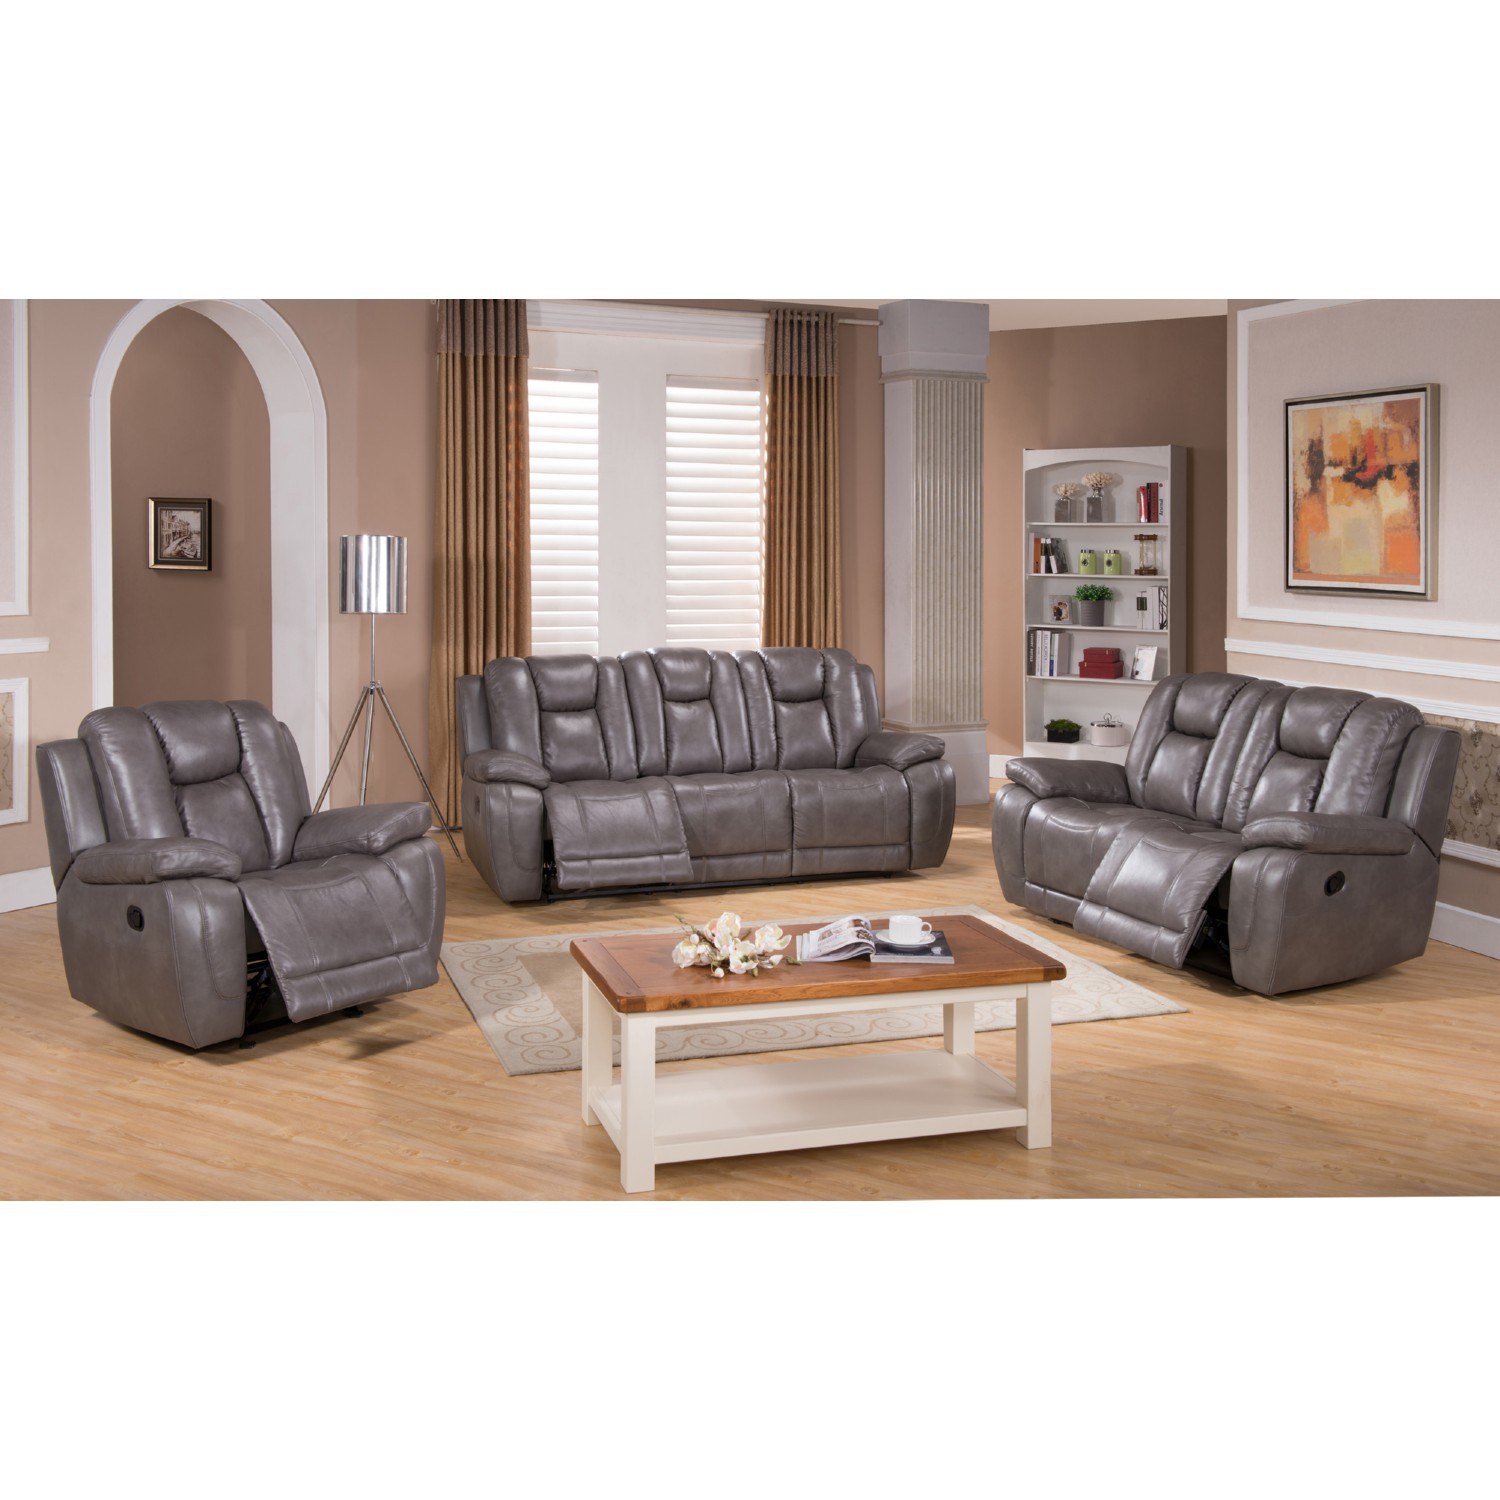 AMAX Leather AustinSLC Austin 100% Leather 3 Piece Set Reclining